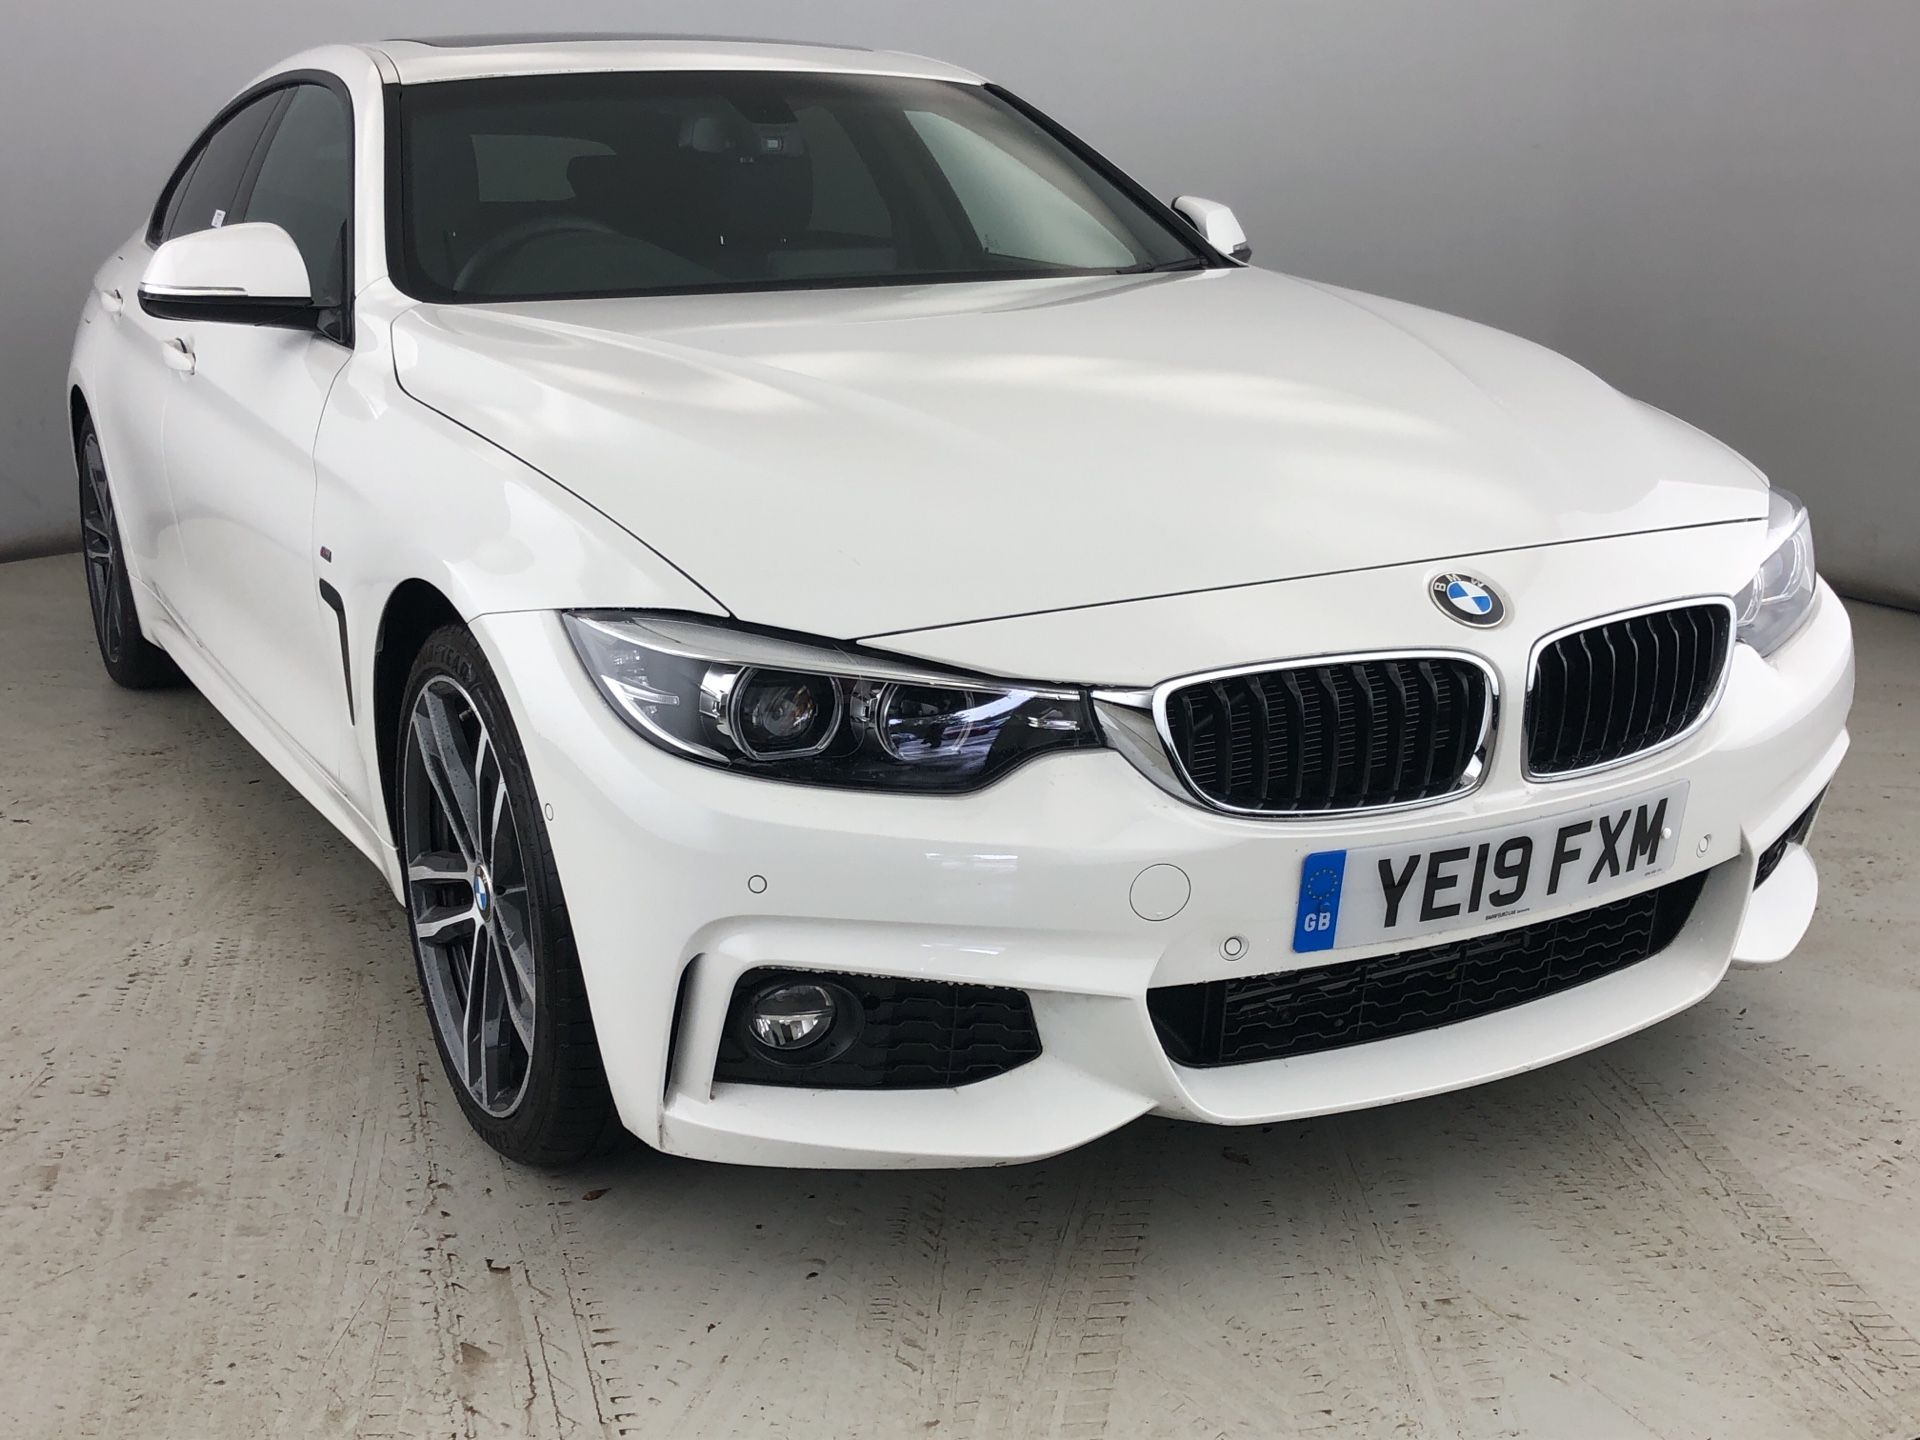 Image 1 - BMW 420d M Sport Gran Coupe (YE19FXM)